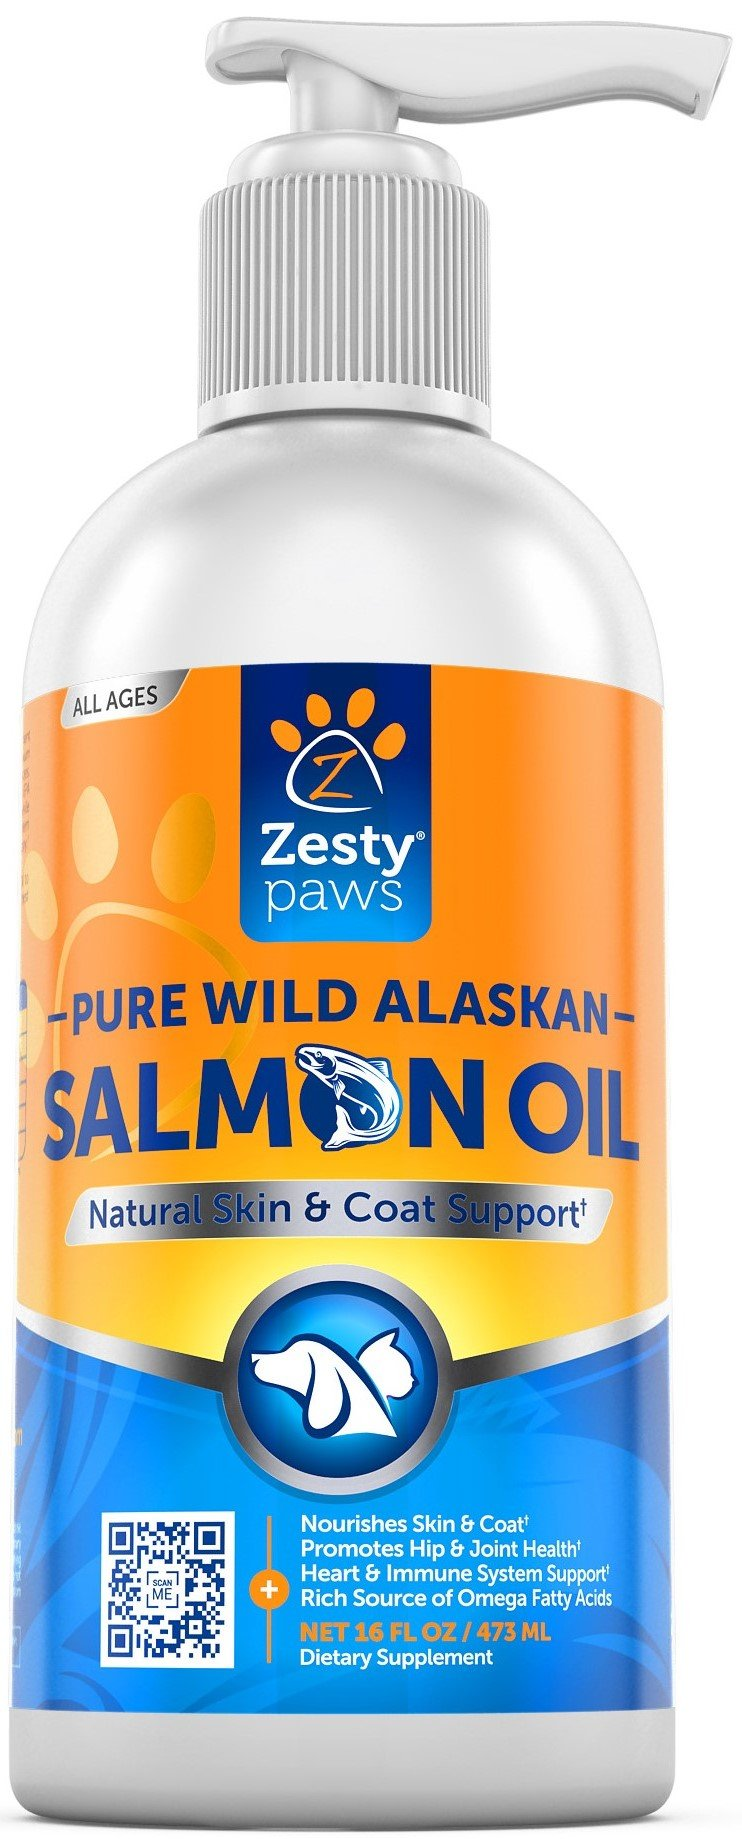 Pure Wild Alaskan Salmon Oil for Dogs & Cats - Supports Joint Function, Immune & Heart Health - Omega 3 Liquid Food Supplement for Pets - All Natural EPA + DHA Fatty Acids for Skin & Coat - 16 FL OZ